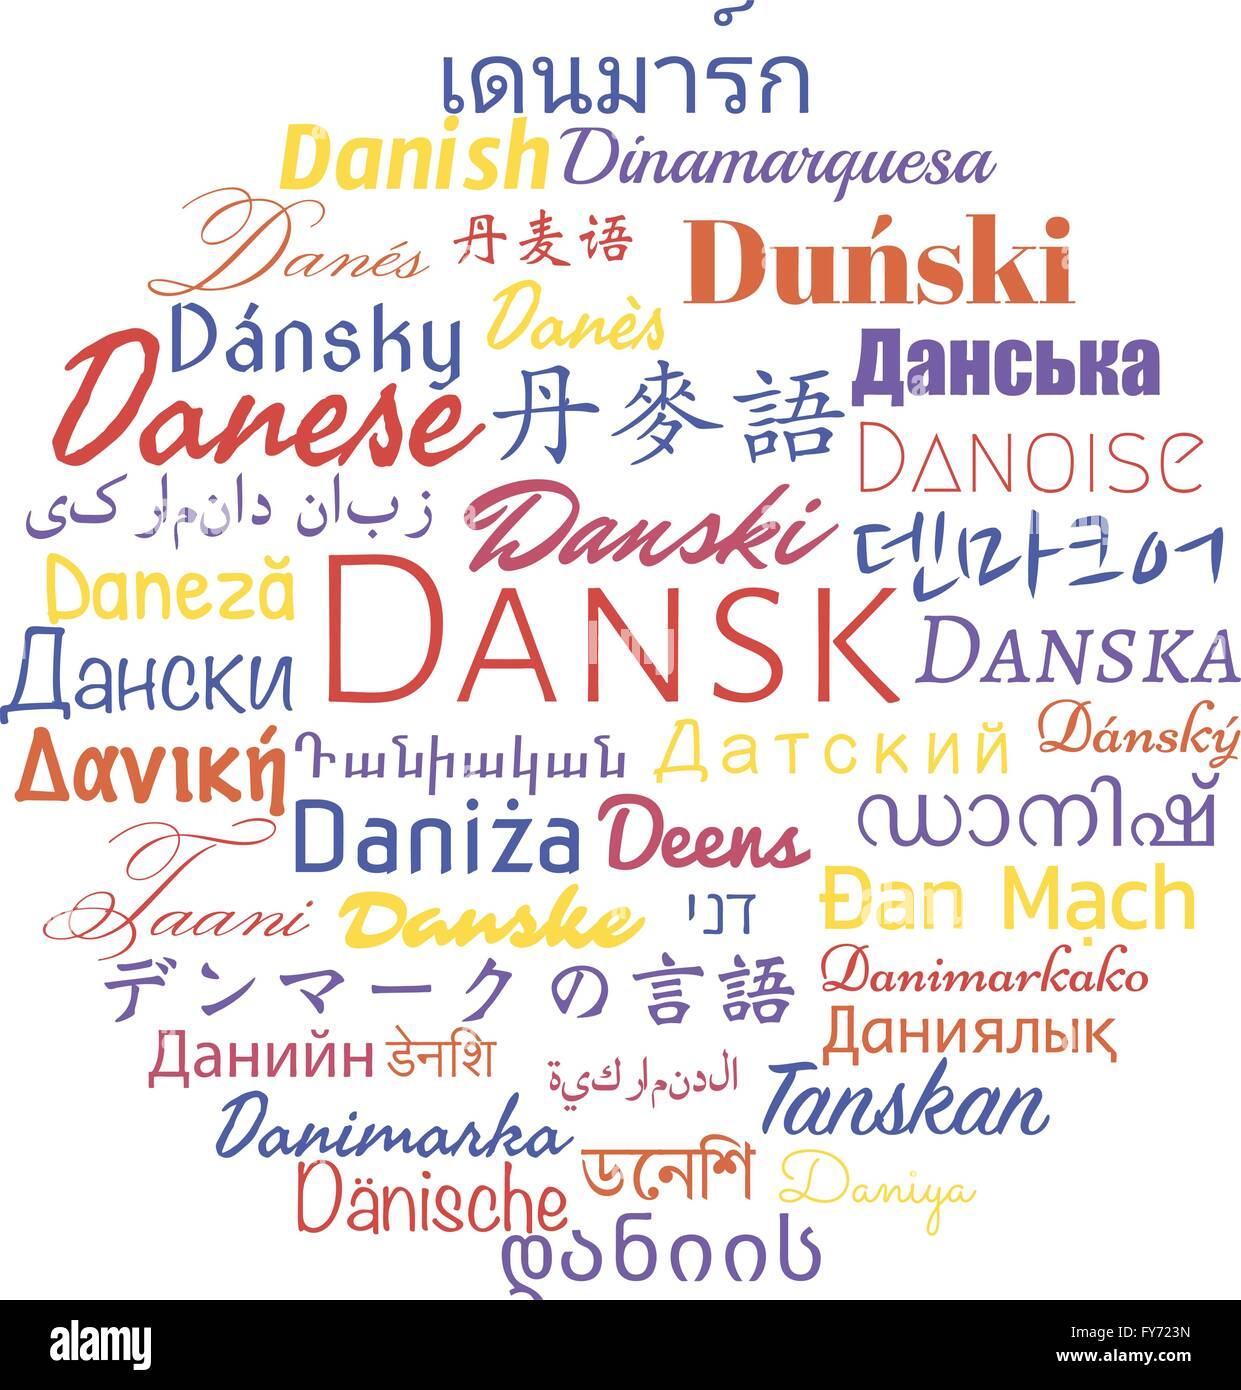 Danish Language In The Languages Of The World. Vector